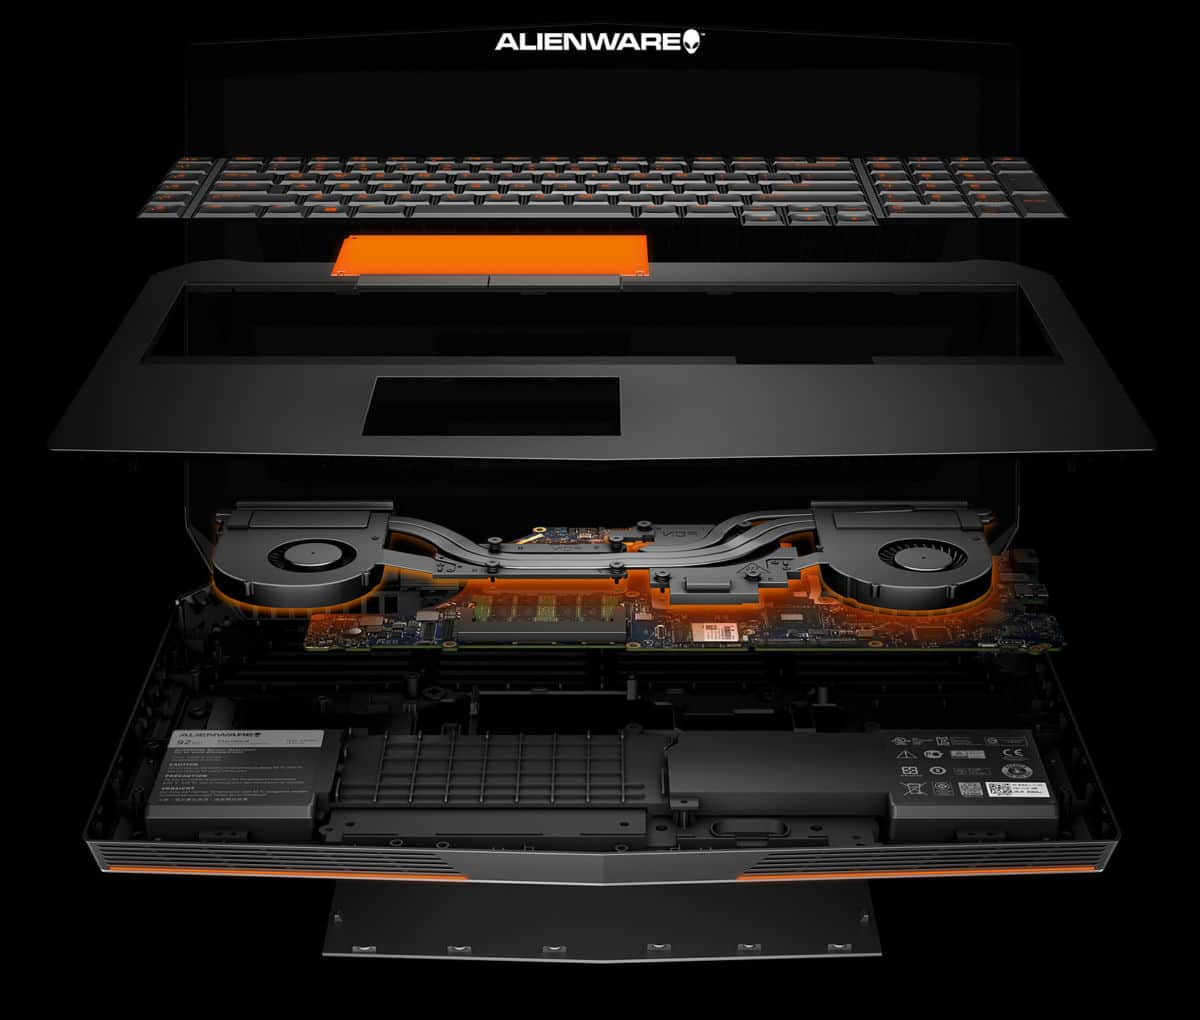 If Only All Gaming Machines Were Built Like The Alienware 17